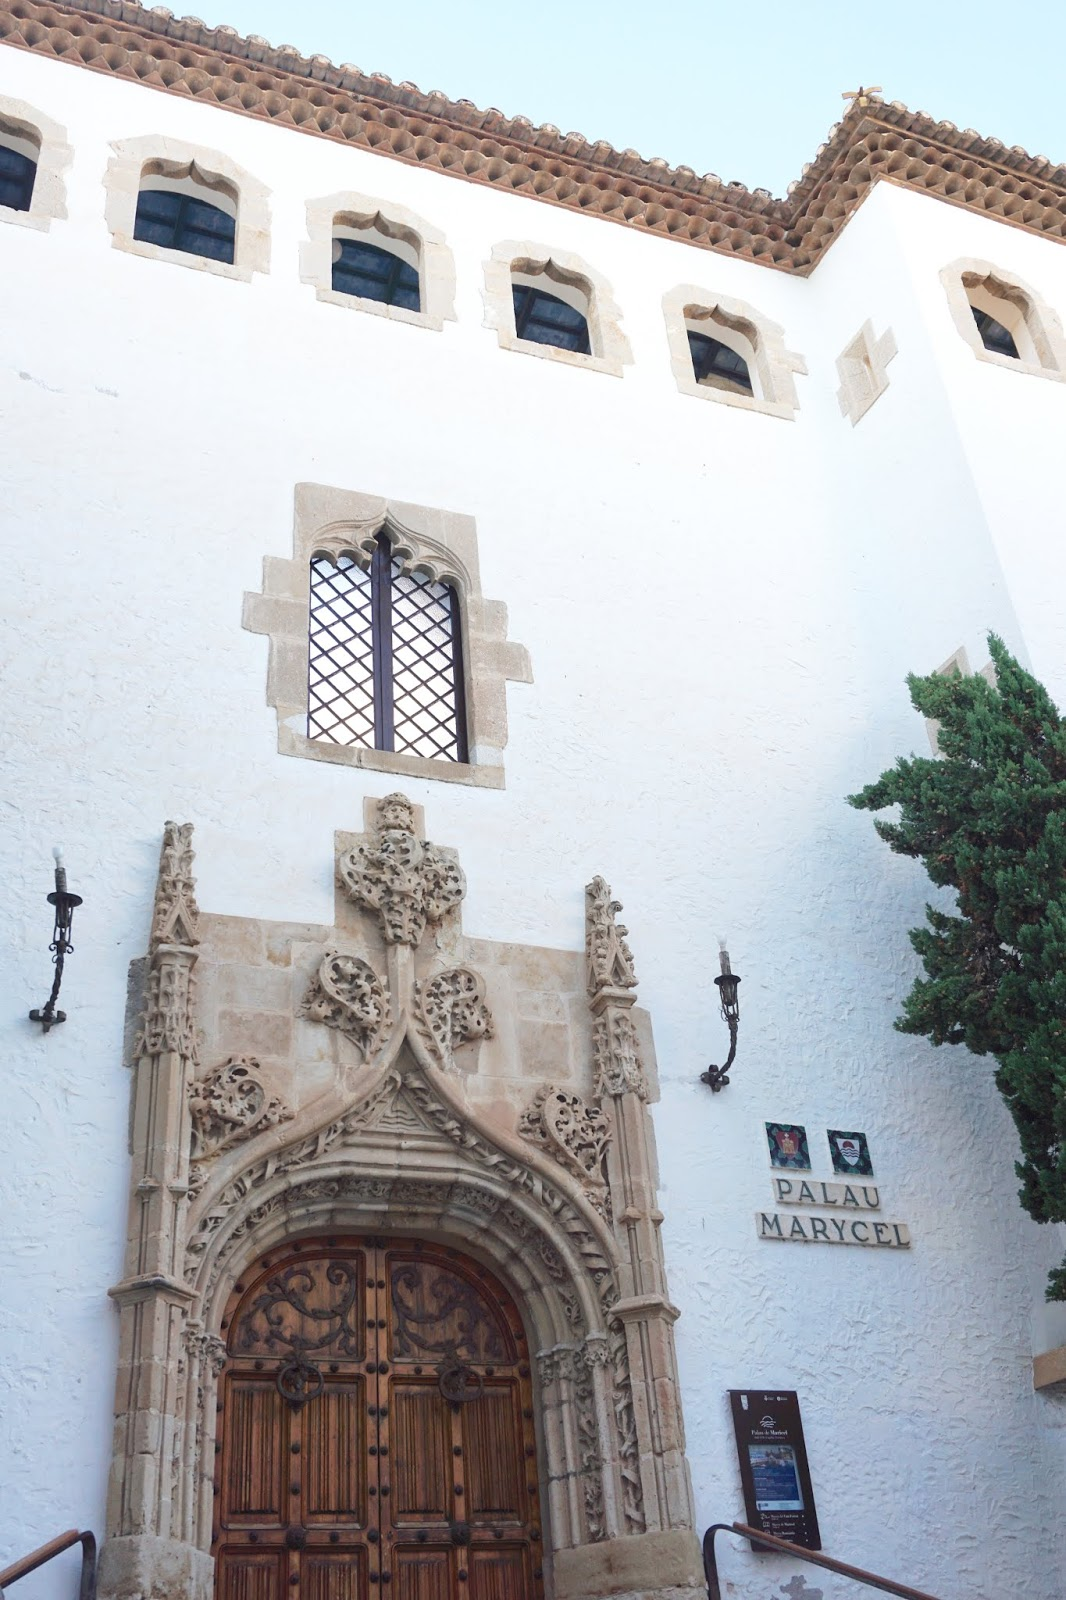 Spain Palau de Maricel The Maricel Palace Things to do in Sitges